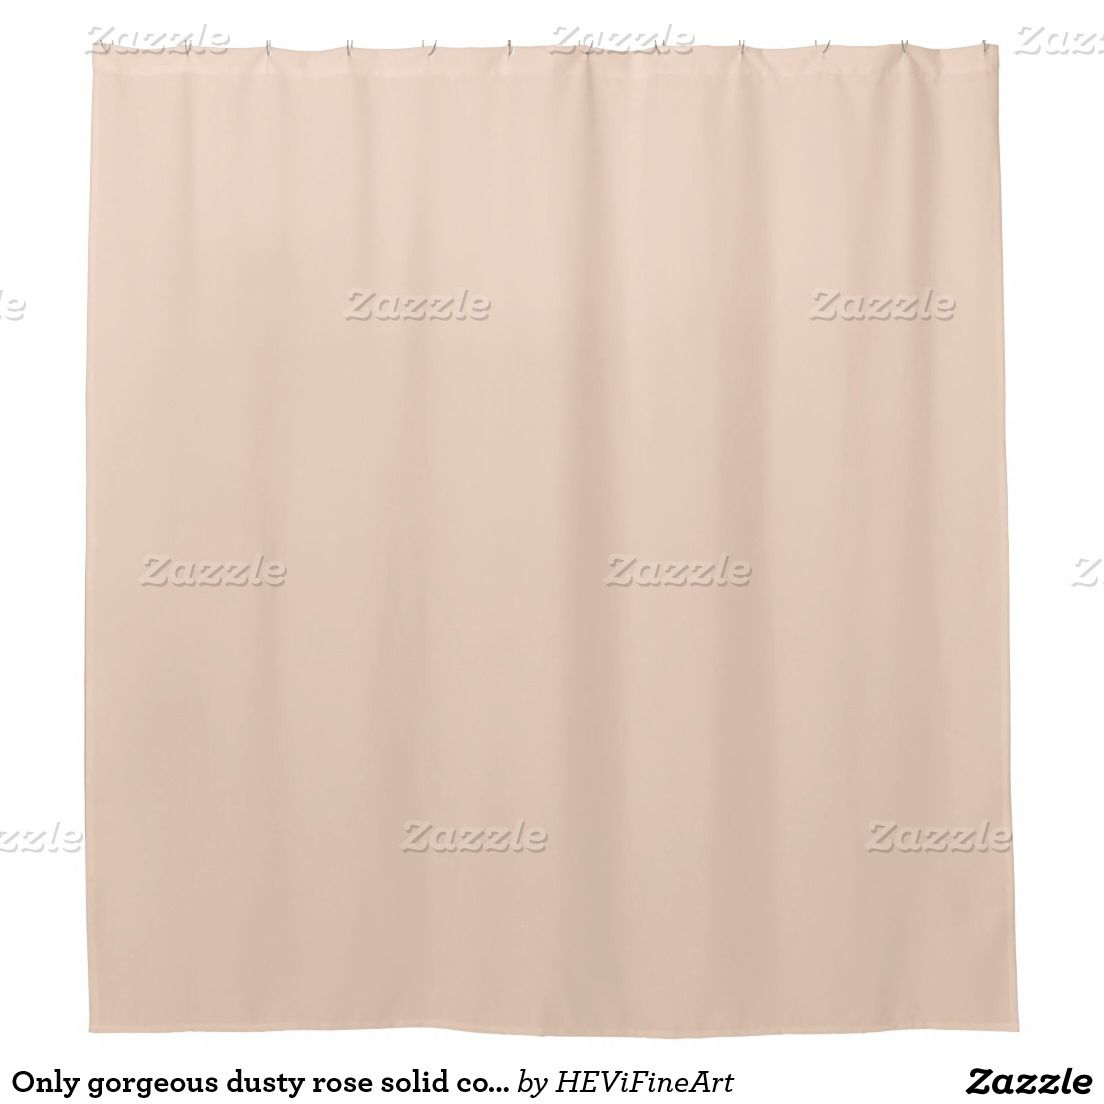 Only Gorgeous Dusty Rose Solid Color OSCB07 Shower Curtain